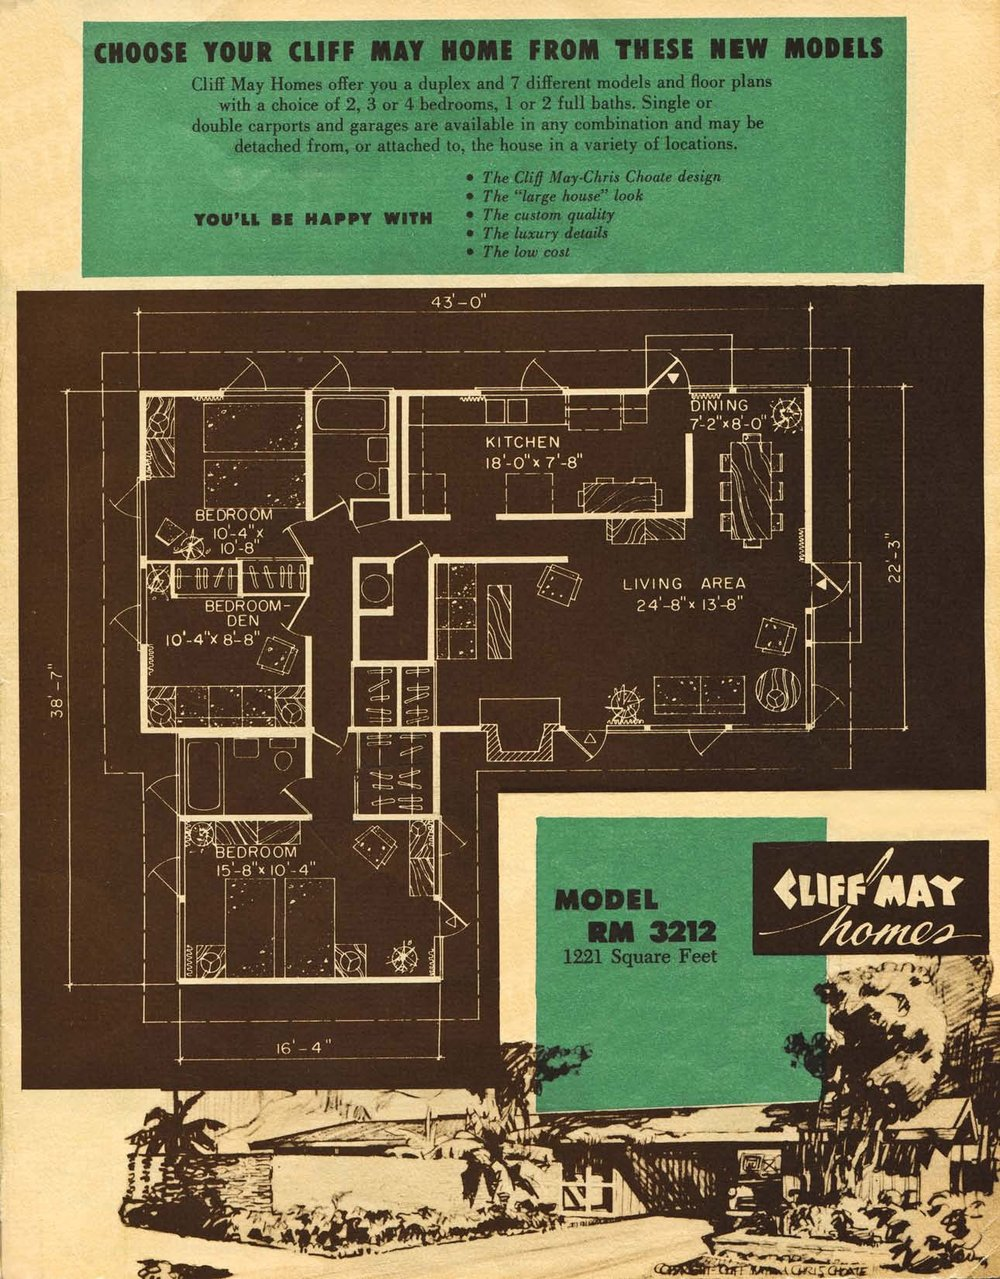 RM3212 Floor Plan from a 1955 Cliff May Homes Brochure